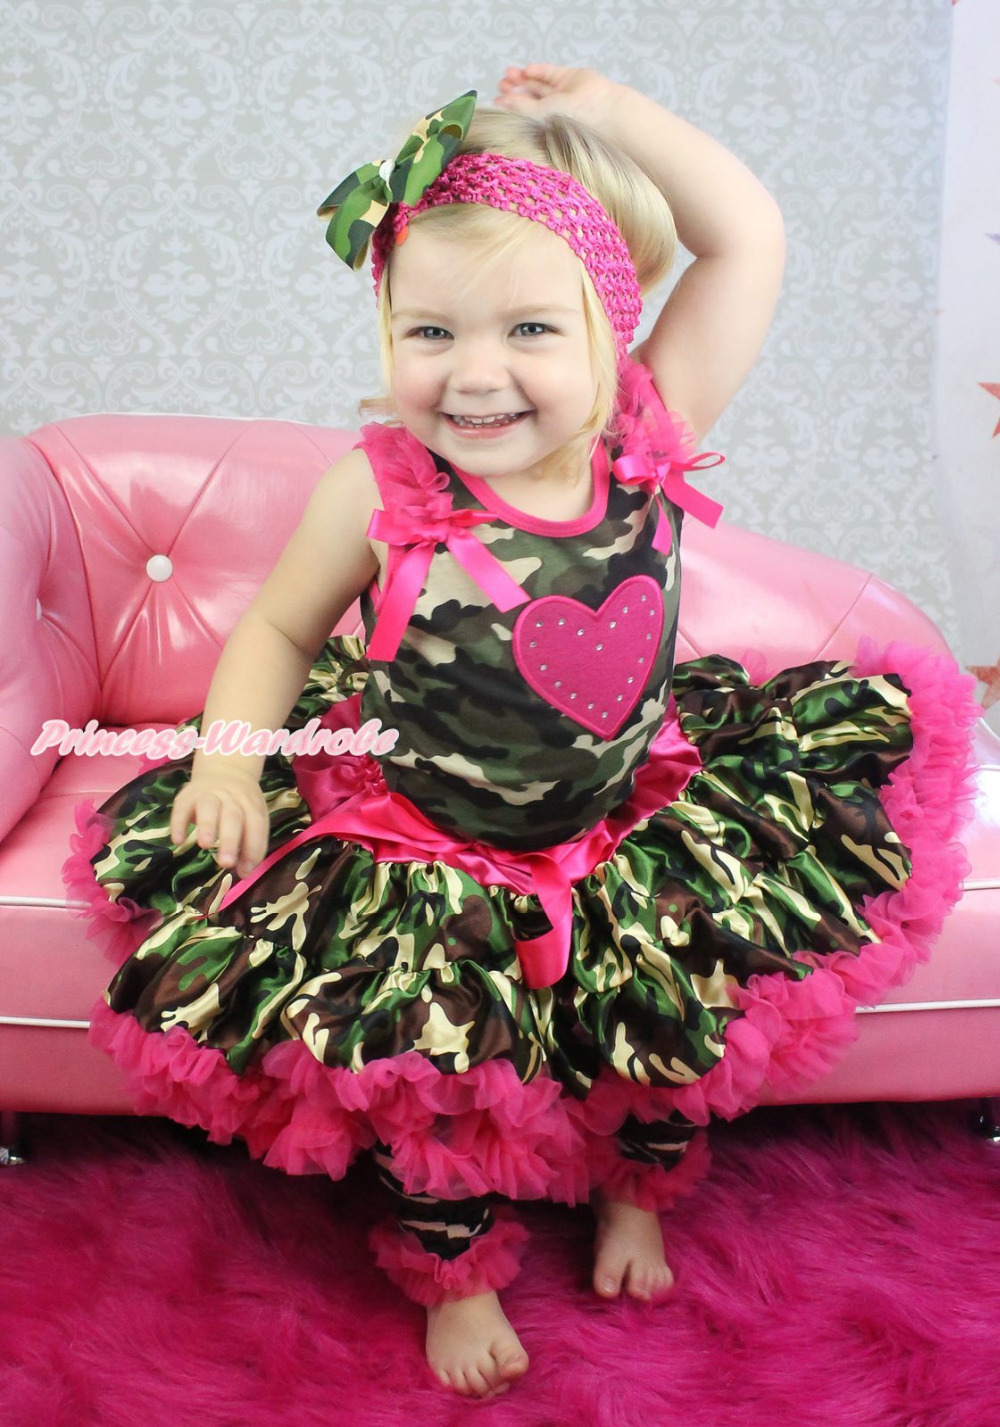 Valentine Hot Pink Heart Camouflage Top Pettiskirt Skirt Girl Cloth Outfit 1-8Y MAPSA0742<br>